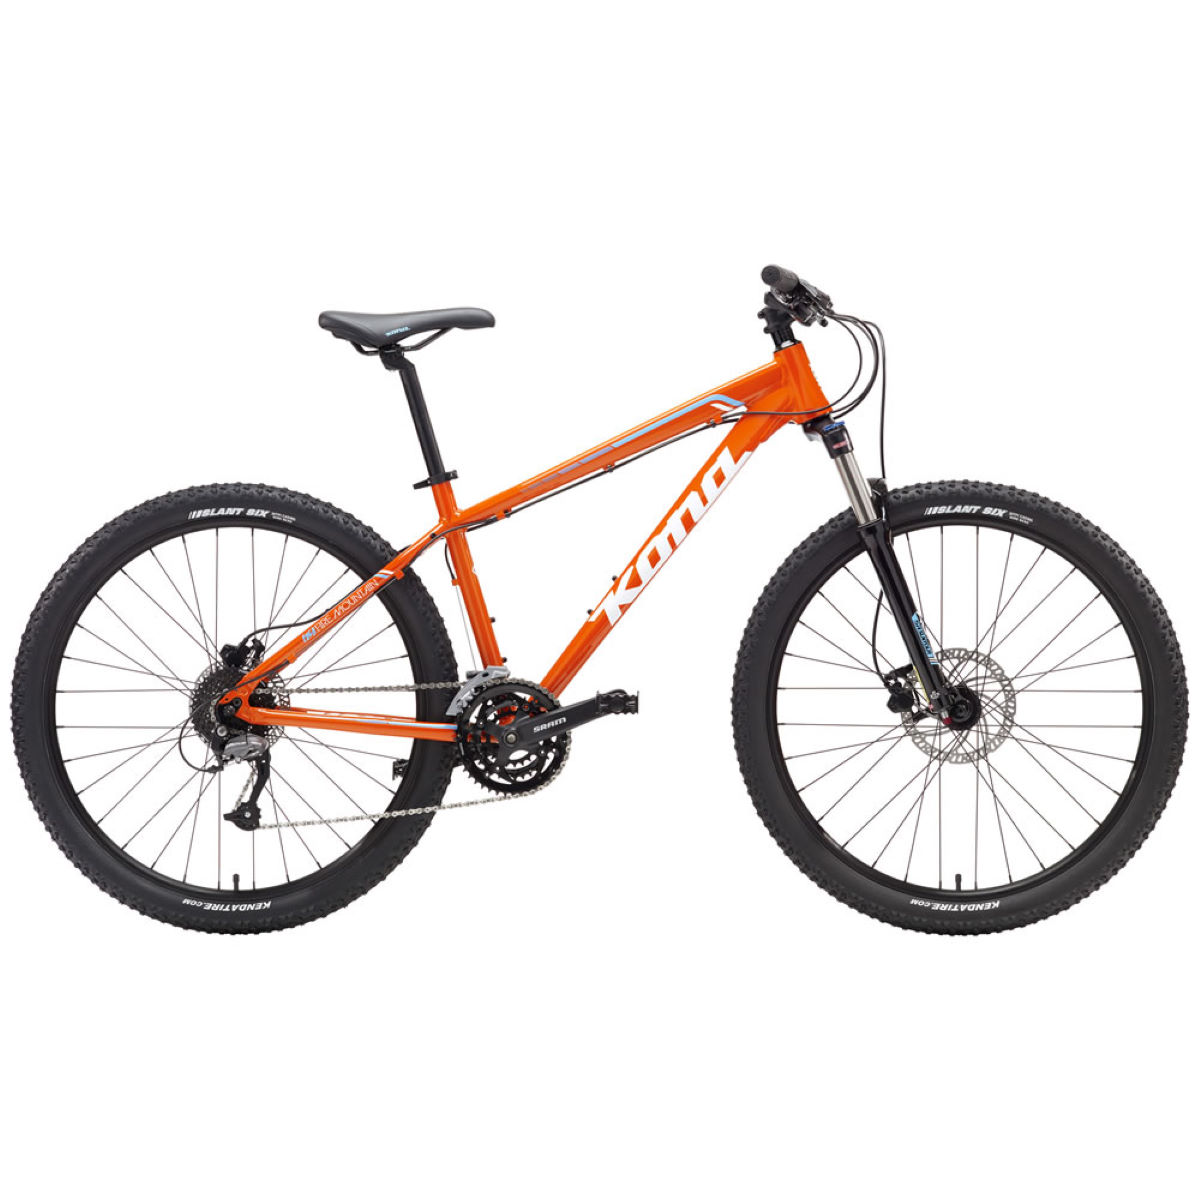 VTT Kona Fire Mountain (2017) - XS Orange VTT semi-rigides